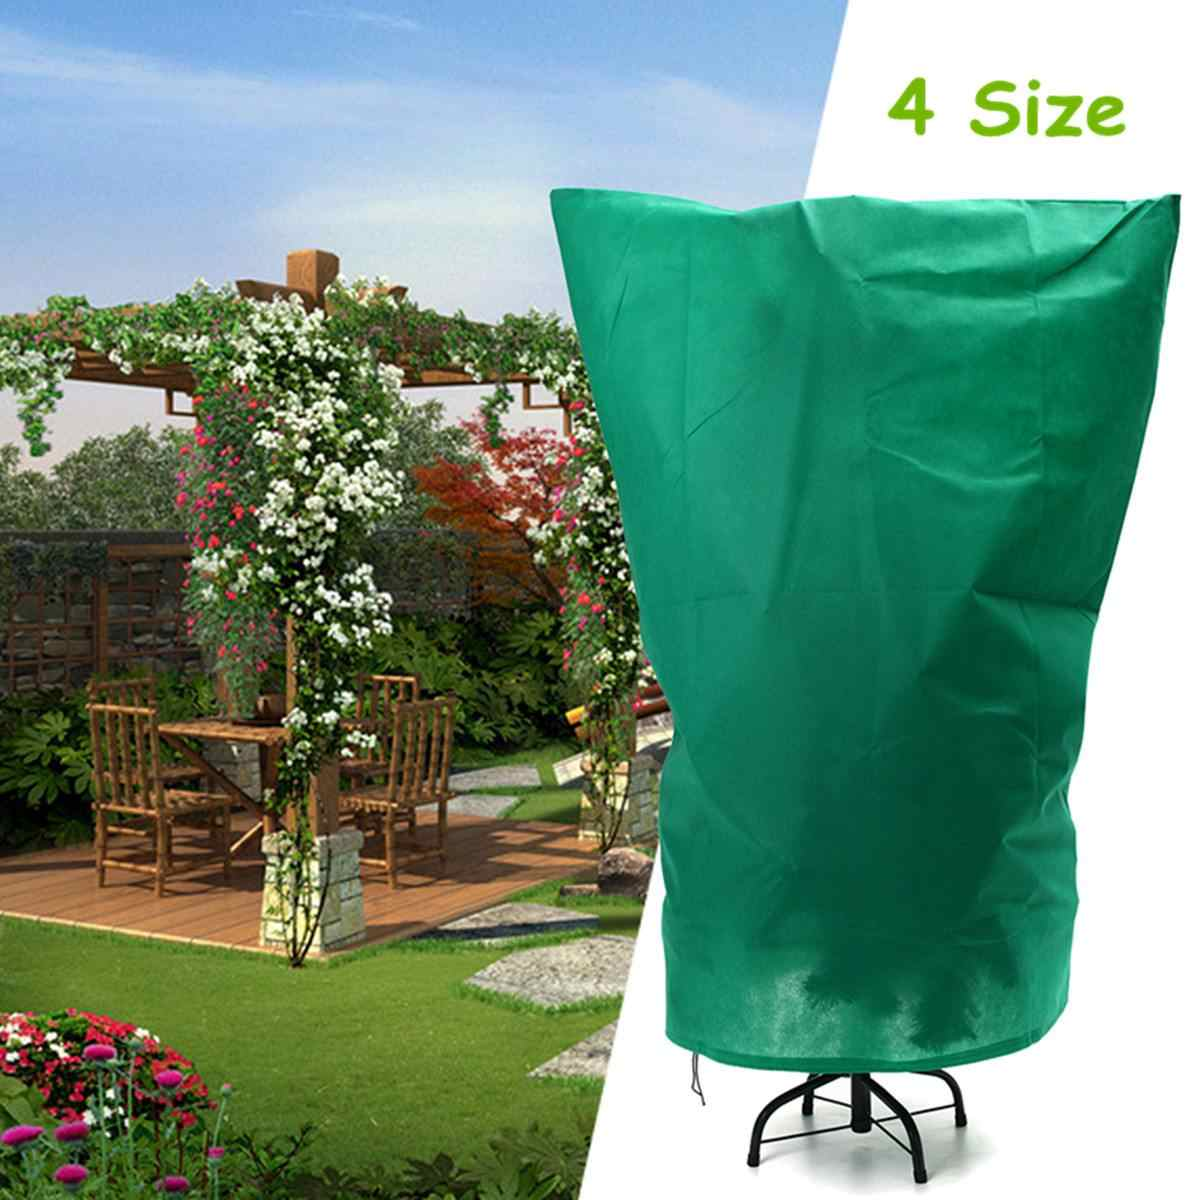 Plant Protection Bags Winter Cover Plants Garden Tool Plant Cover Bag Polyester Fabrics Anti-Insect Organic Net Frost 4 Size